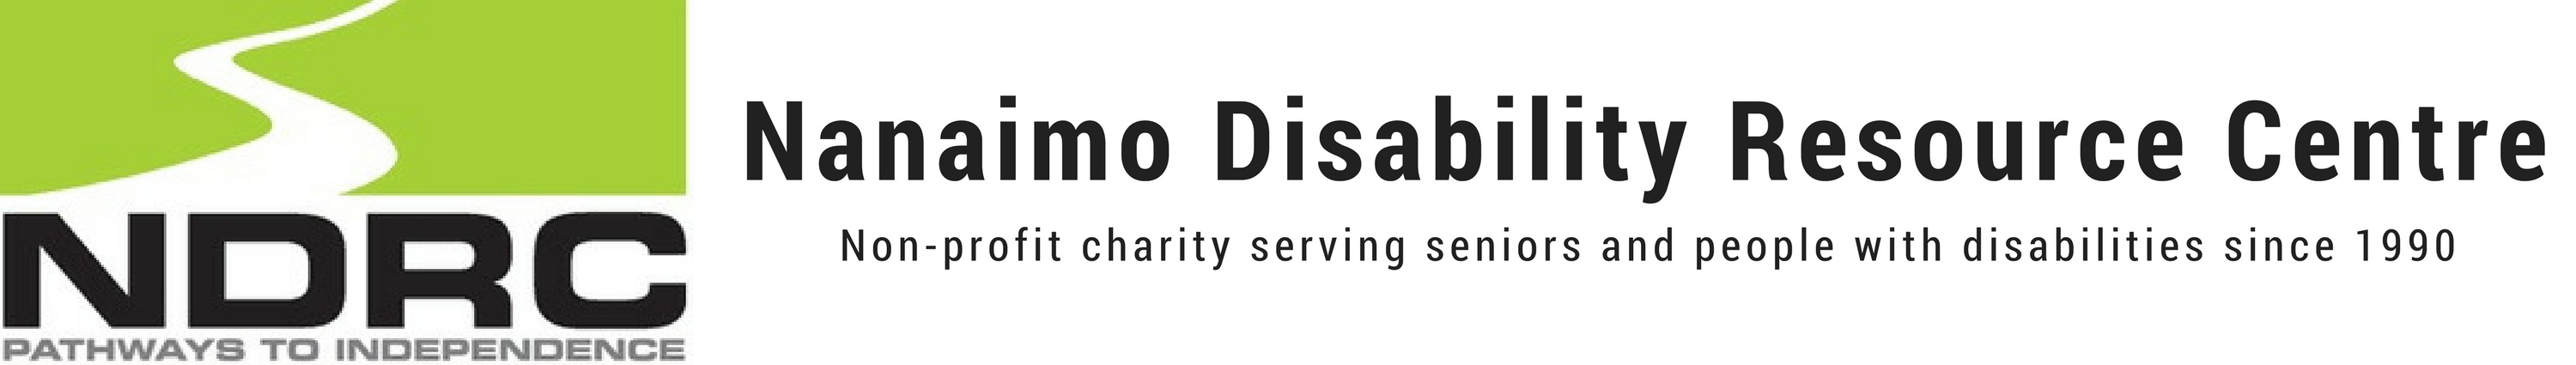 Nanaimo Disability Resource Centre